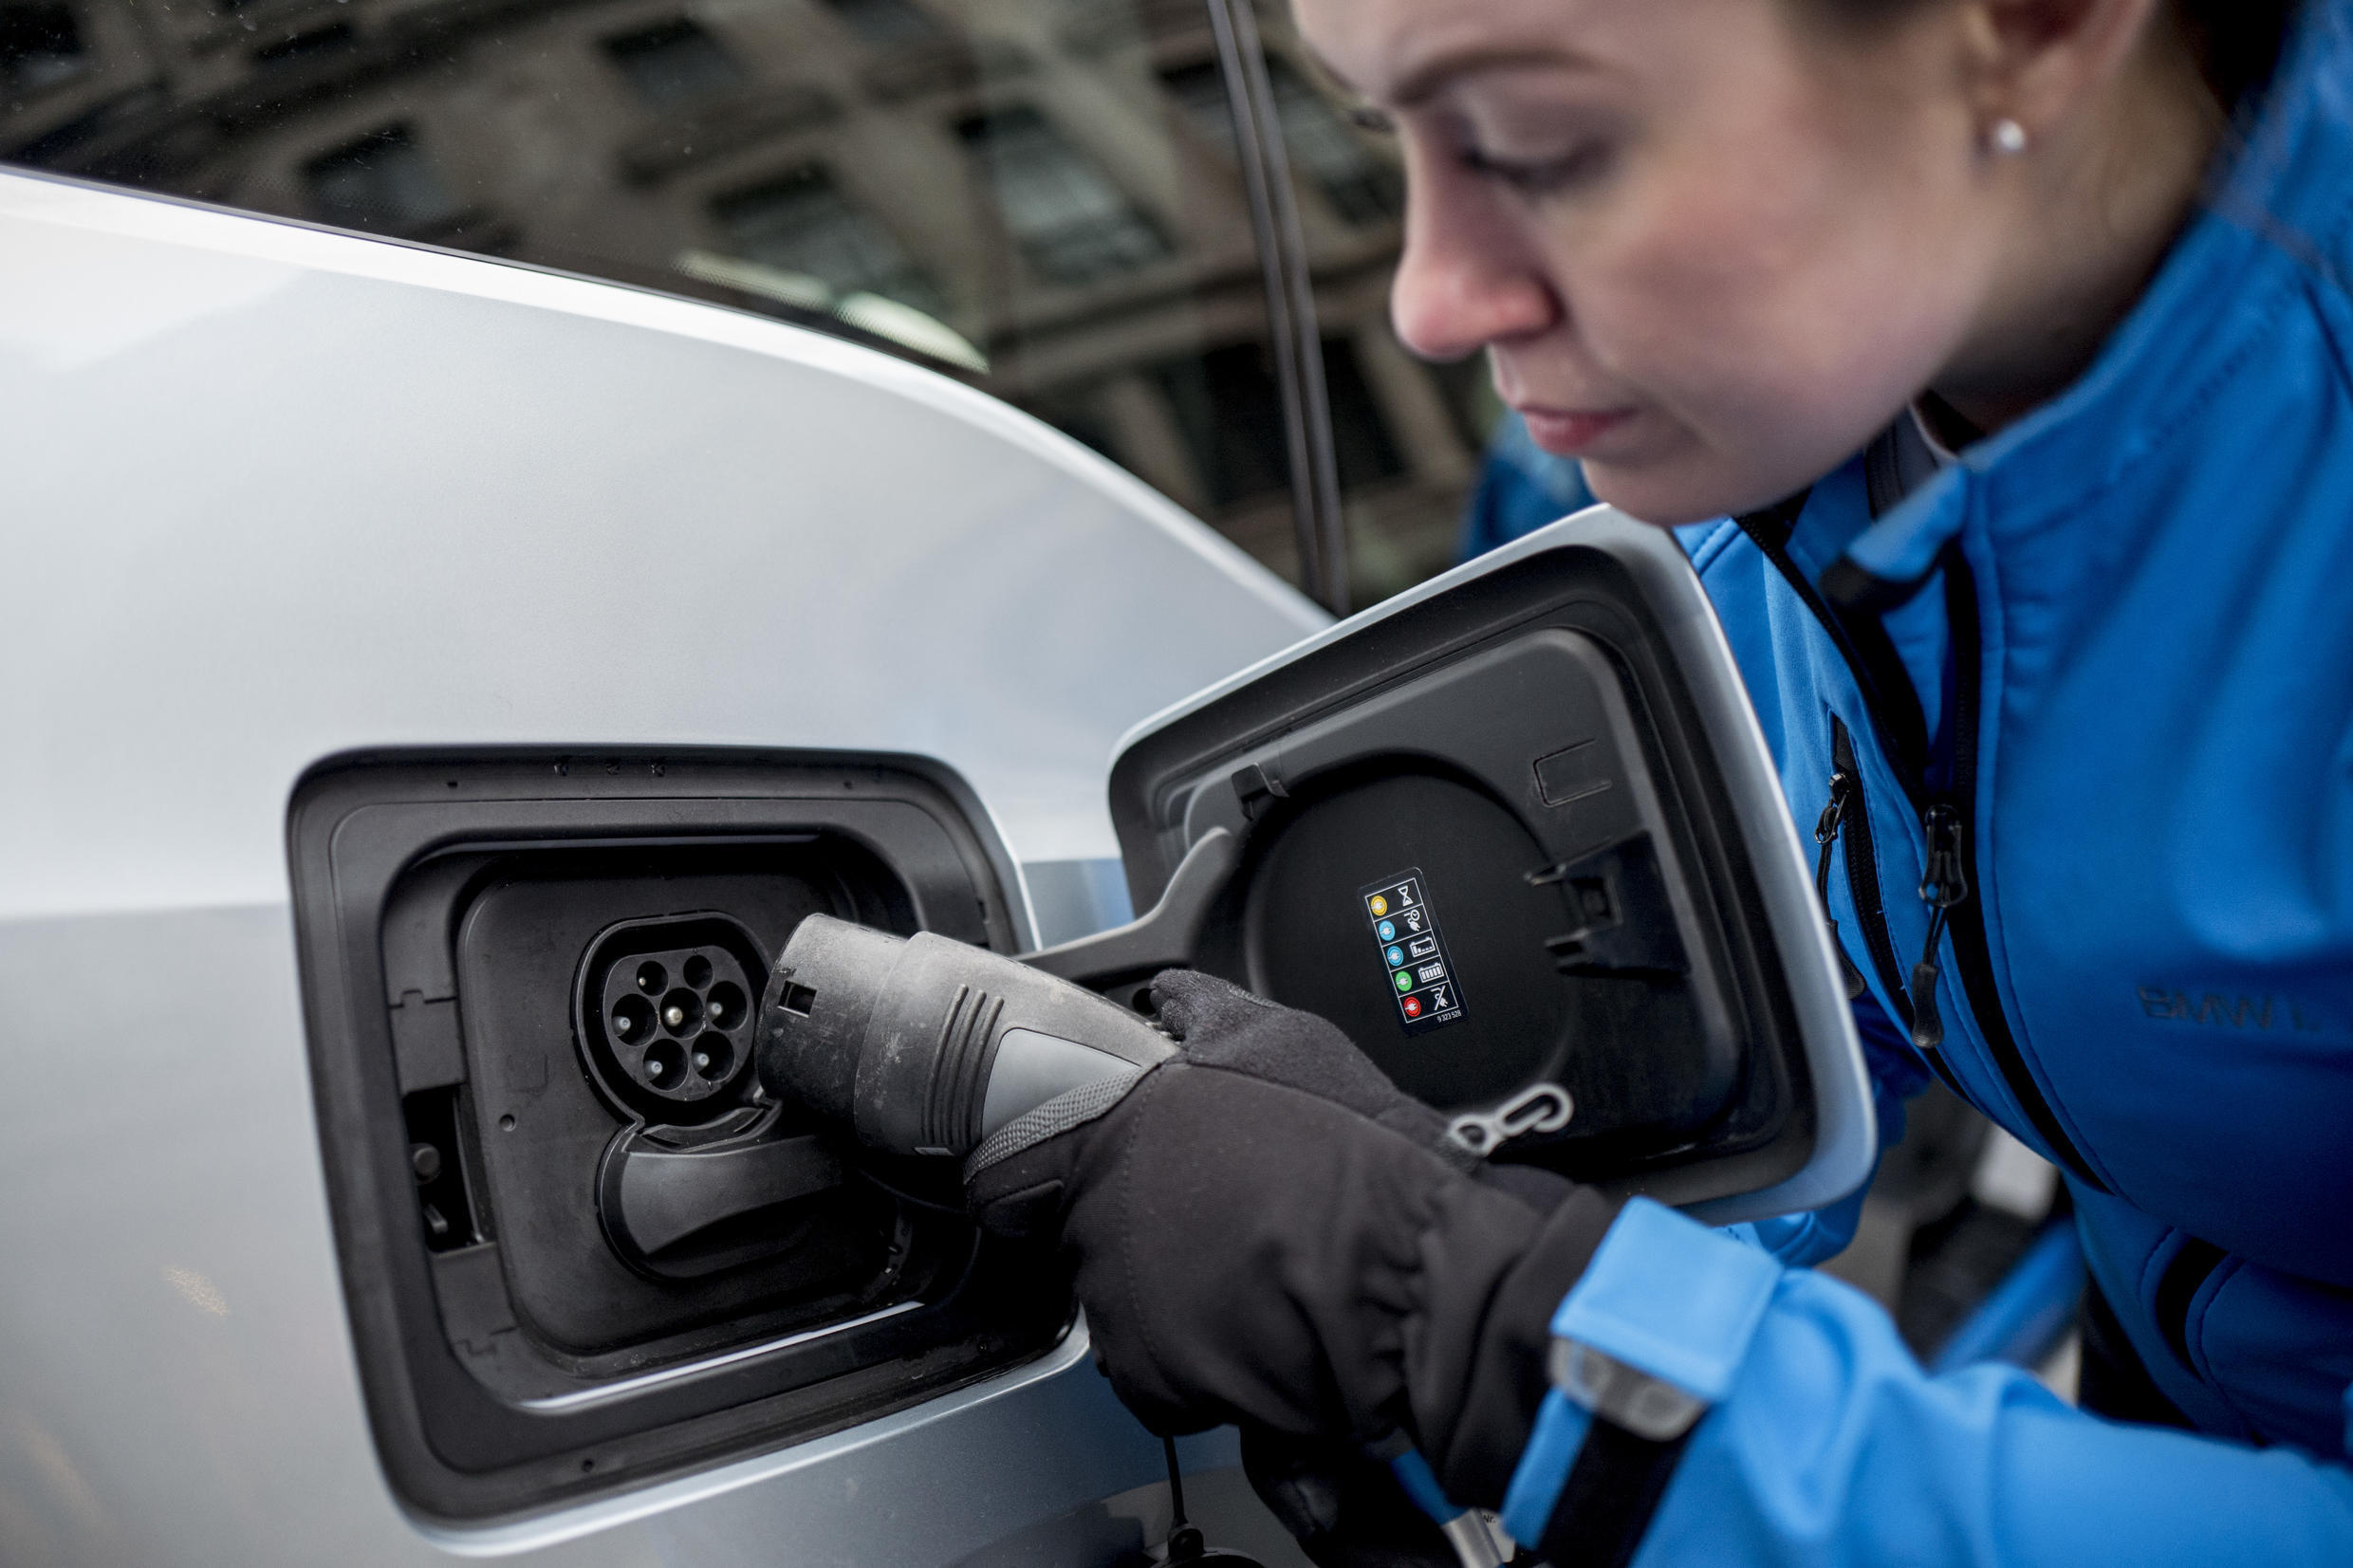 Renault and PSA are racing to shift to electric vehicles as authorities worldwide sharply reduce emission limits.